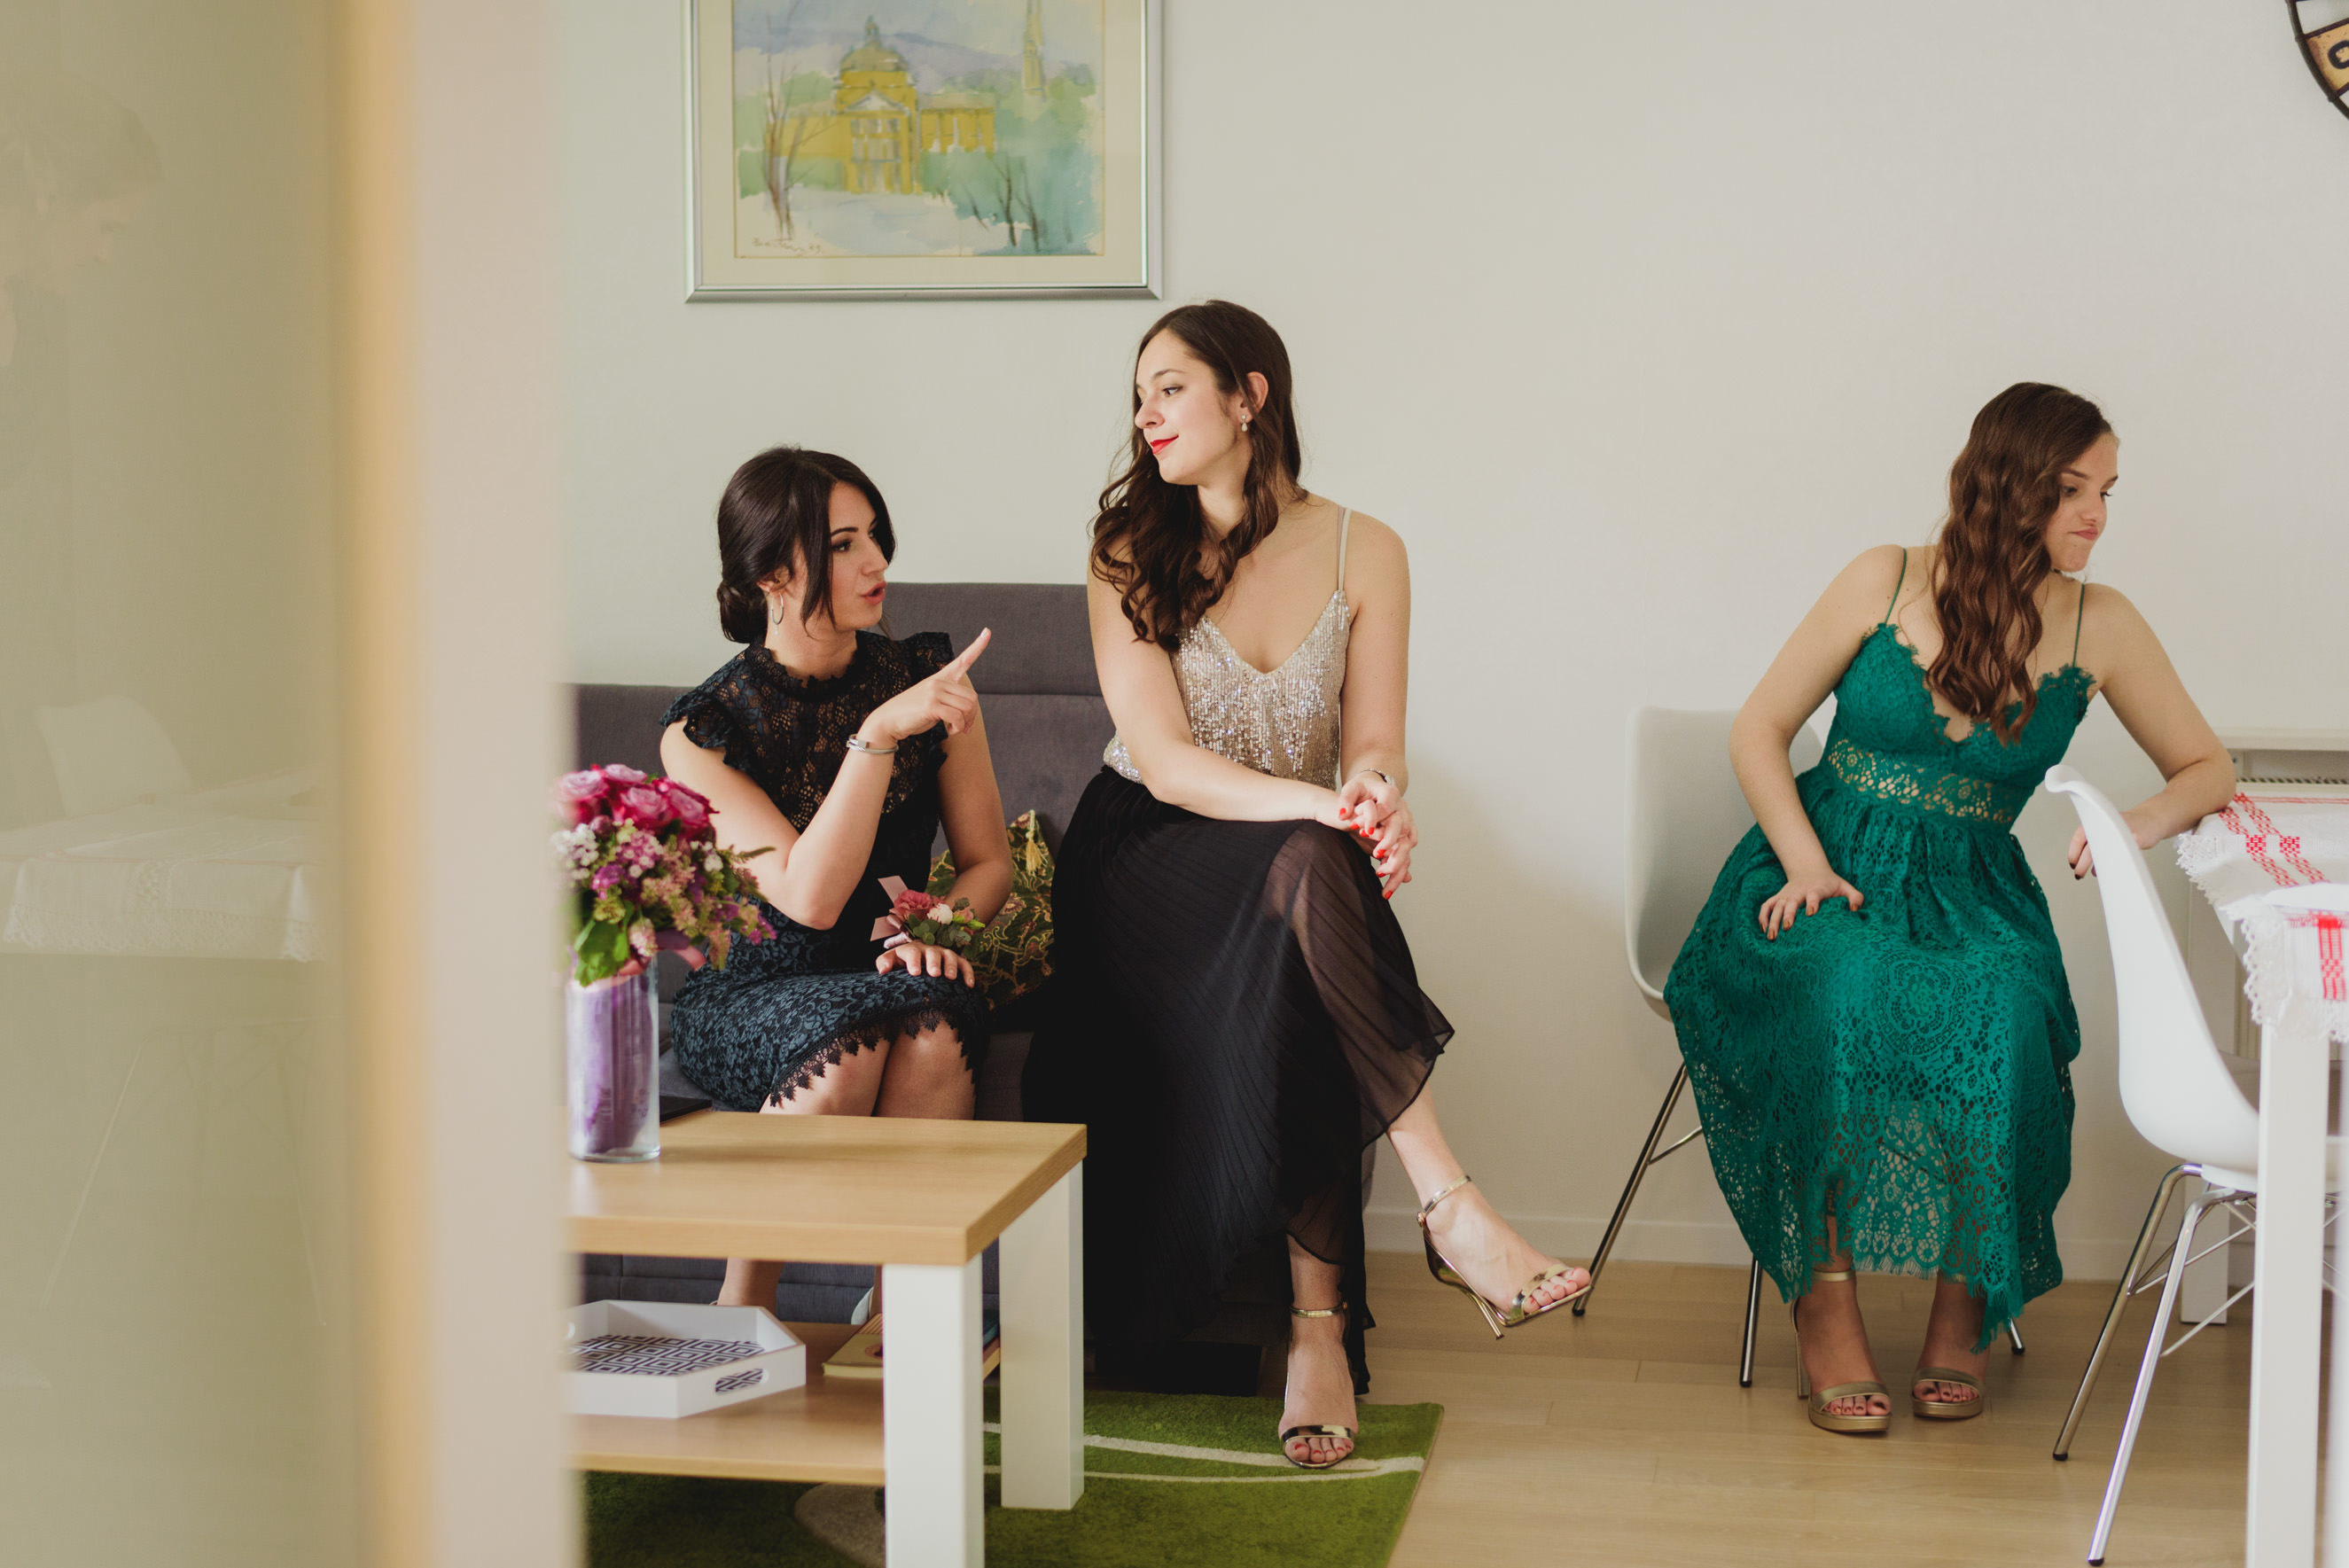 brides sister, maid of honour and bridesmaid all doing their own thing in the living room of brides and grooms apartament